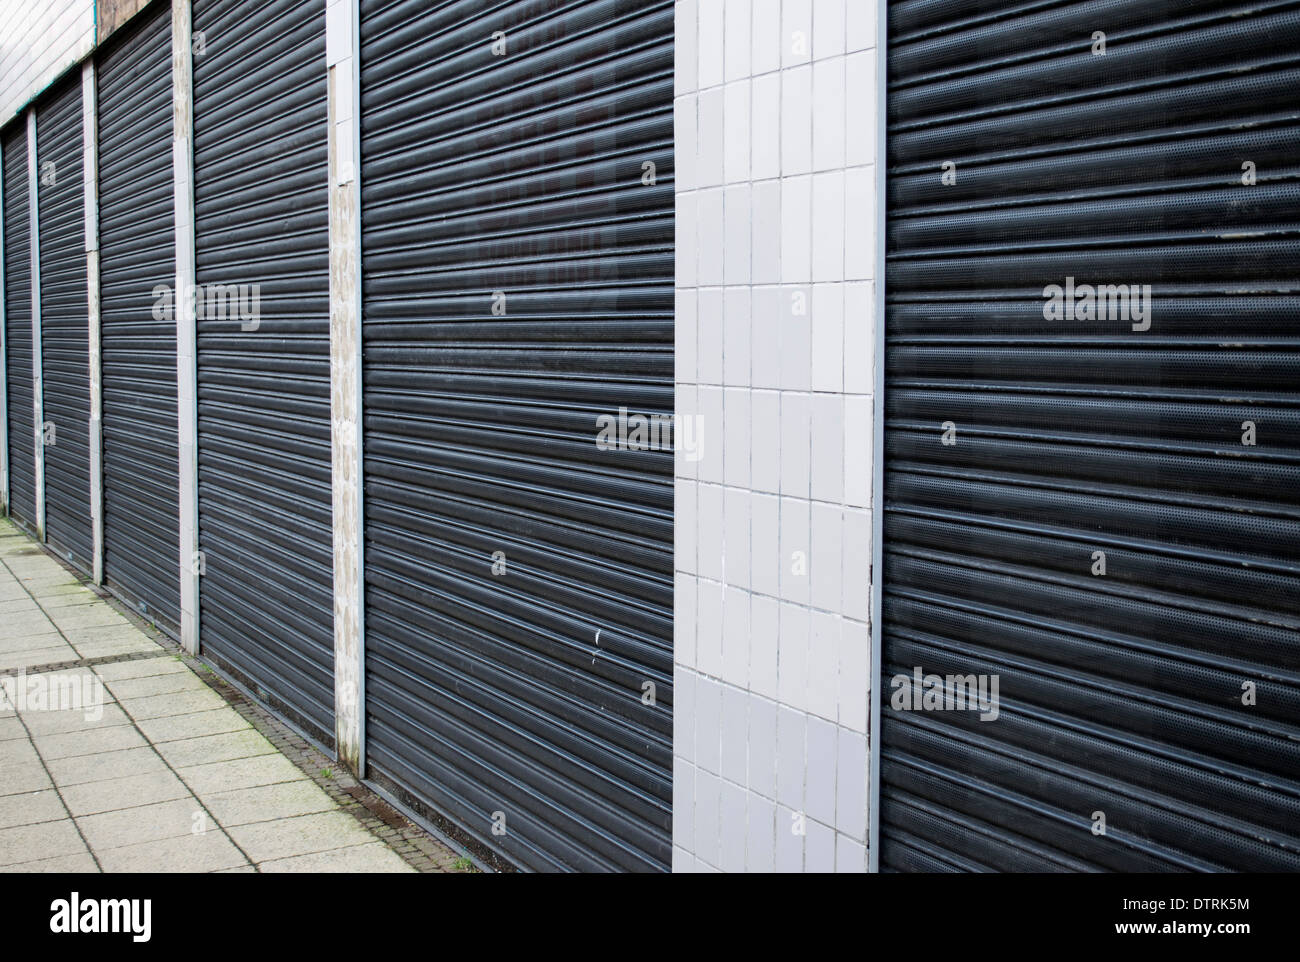 Detail of closed metal shutters on a shop front in the UK highlighting the impact of recession and economic downturn Stock Photo